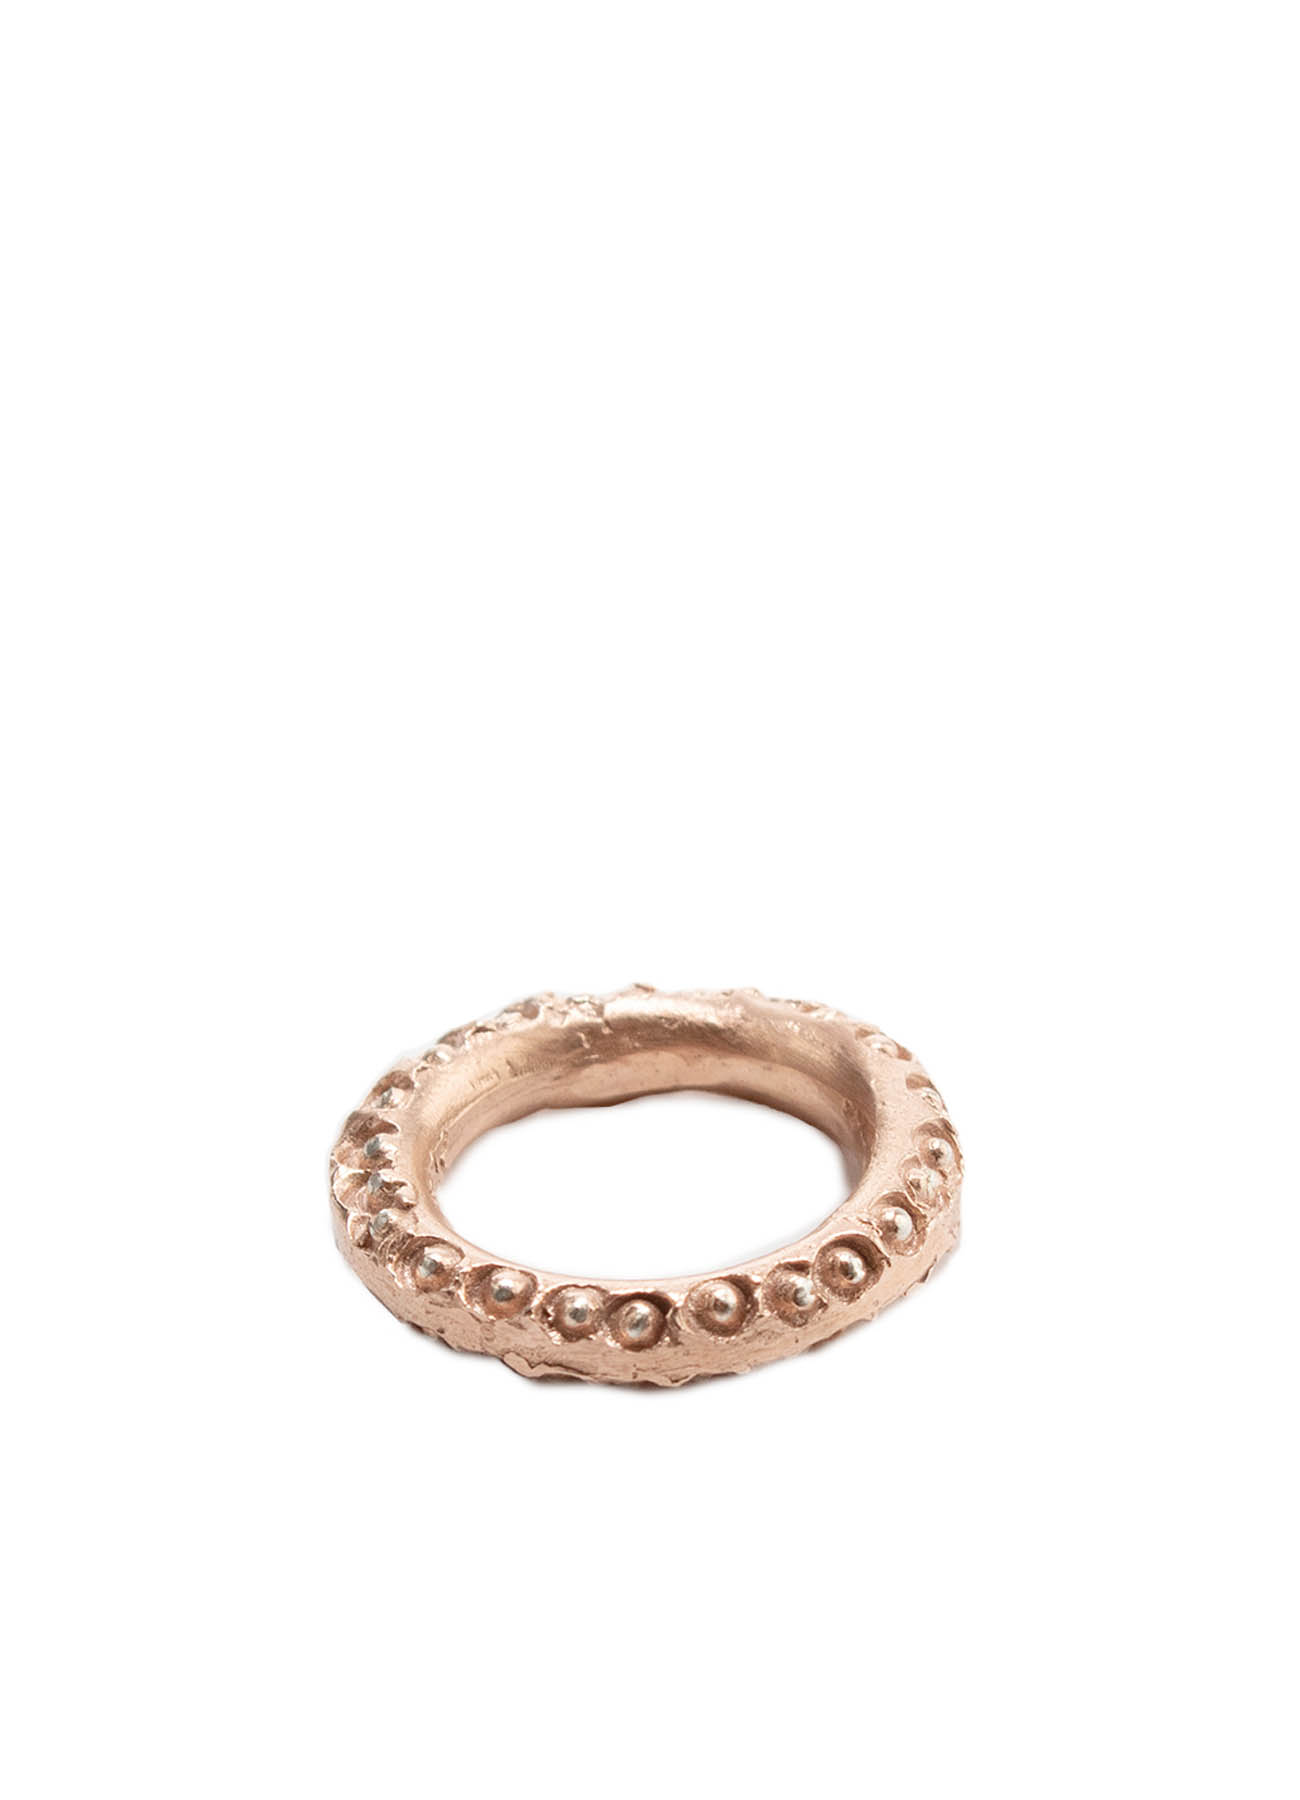 FMS BRONZE Y's PINK S.V.B RING D